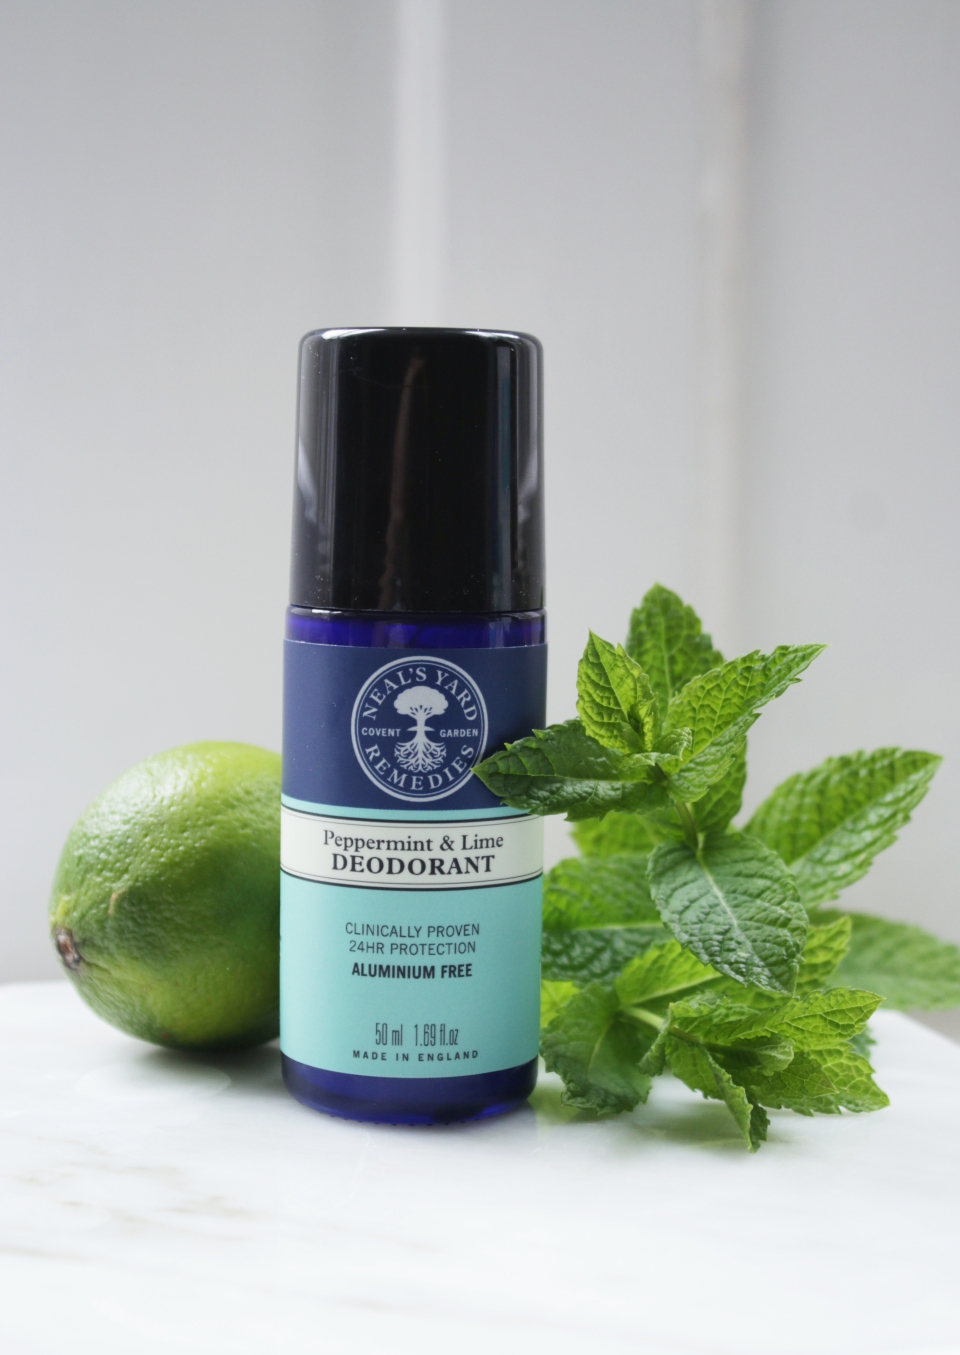 Neal's Yard Remedies review of deodorant